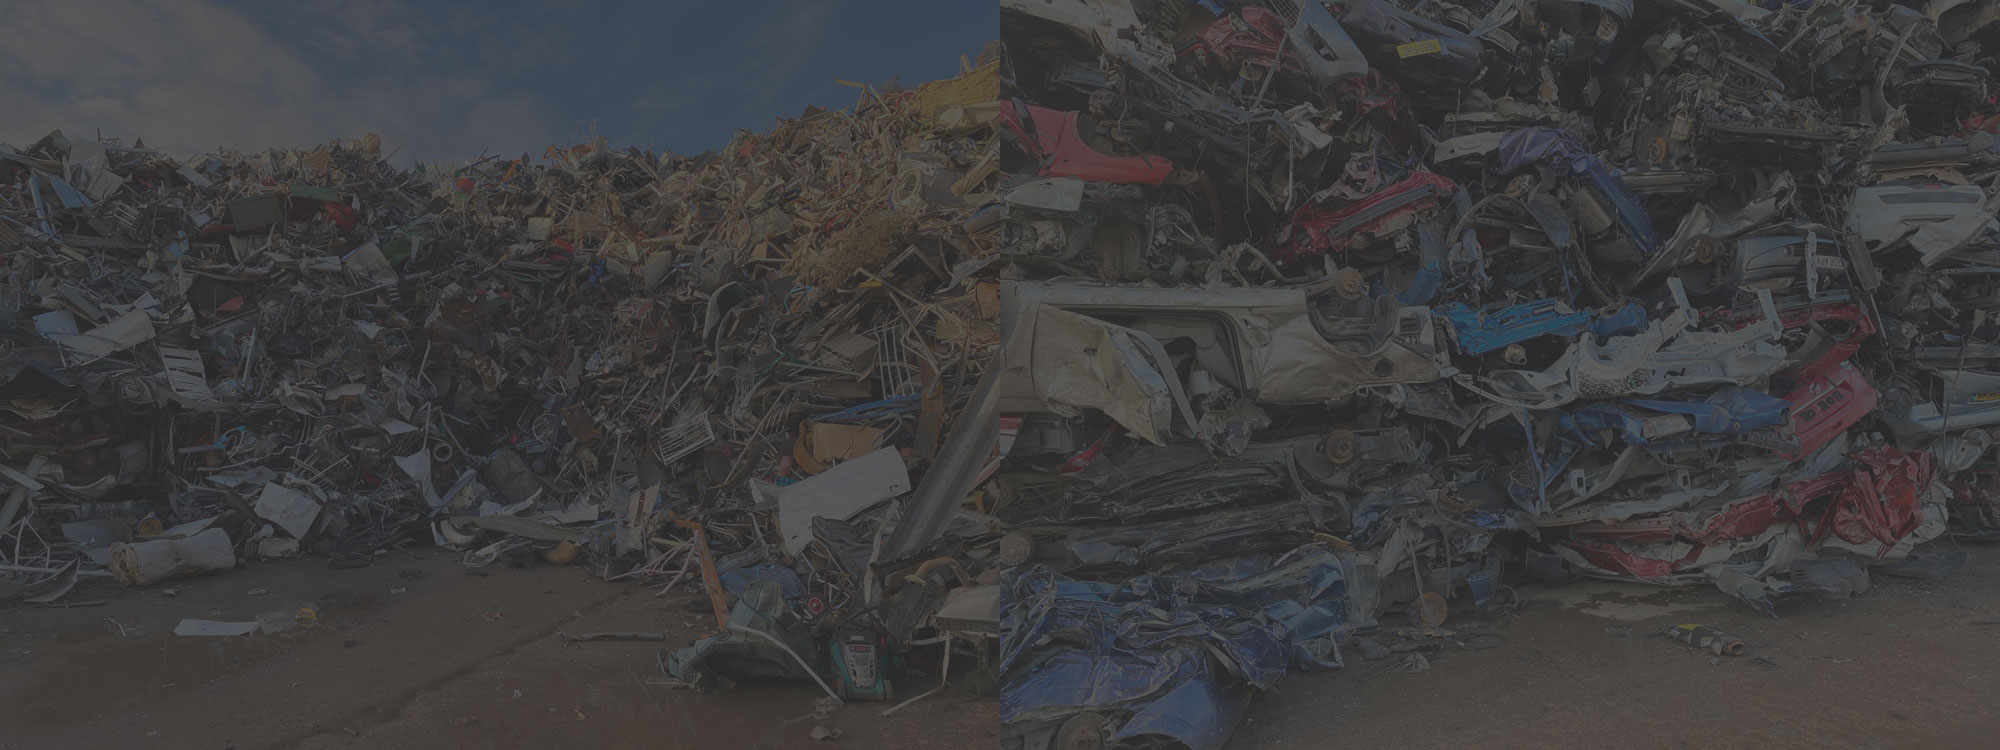 Scrap Metal Recycling for Daventry and surrounding areas